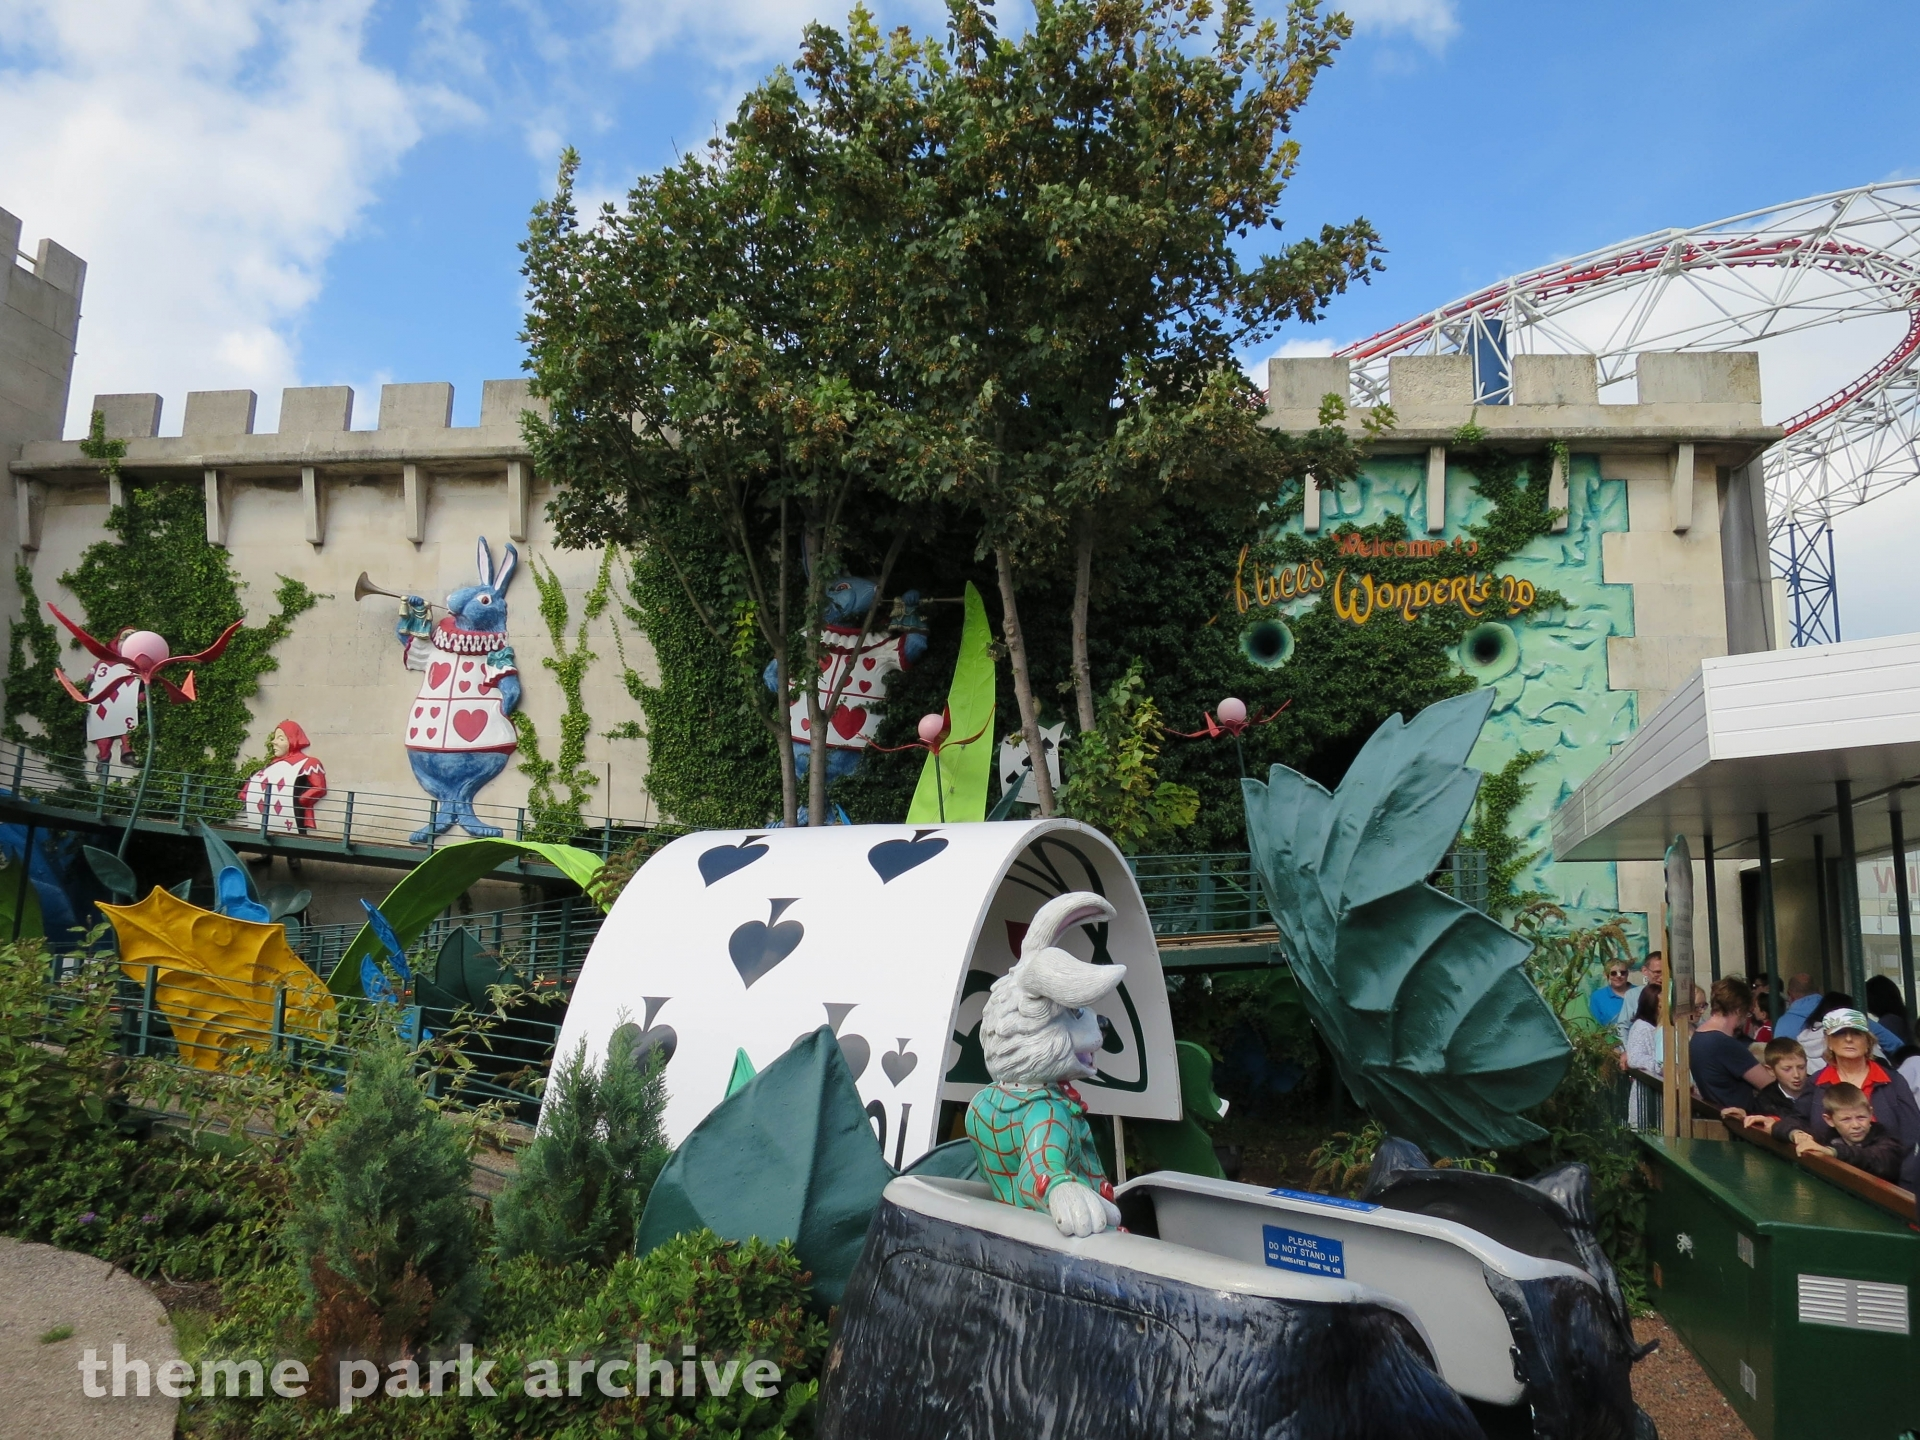 alice in wonderland at blackpool pleasure beach theme park archive